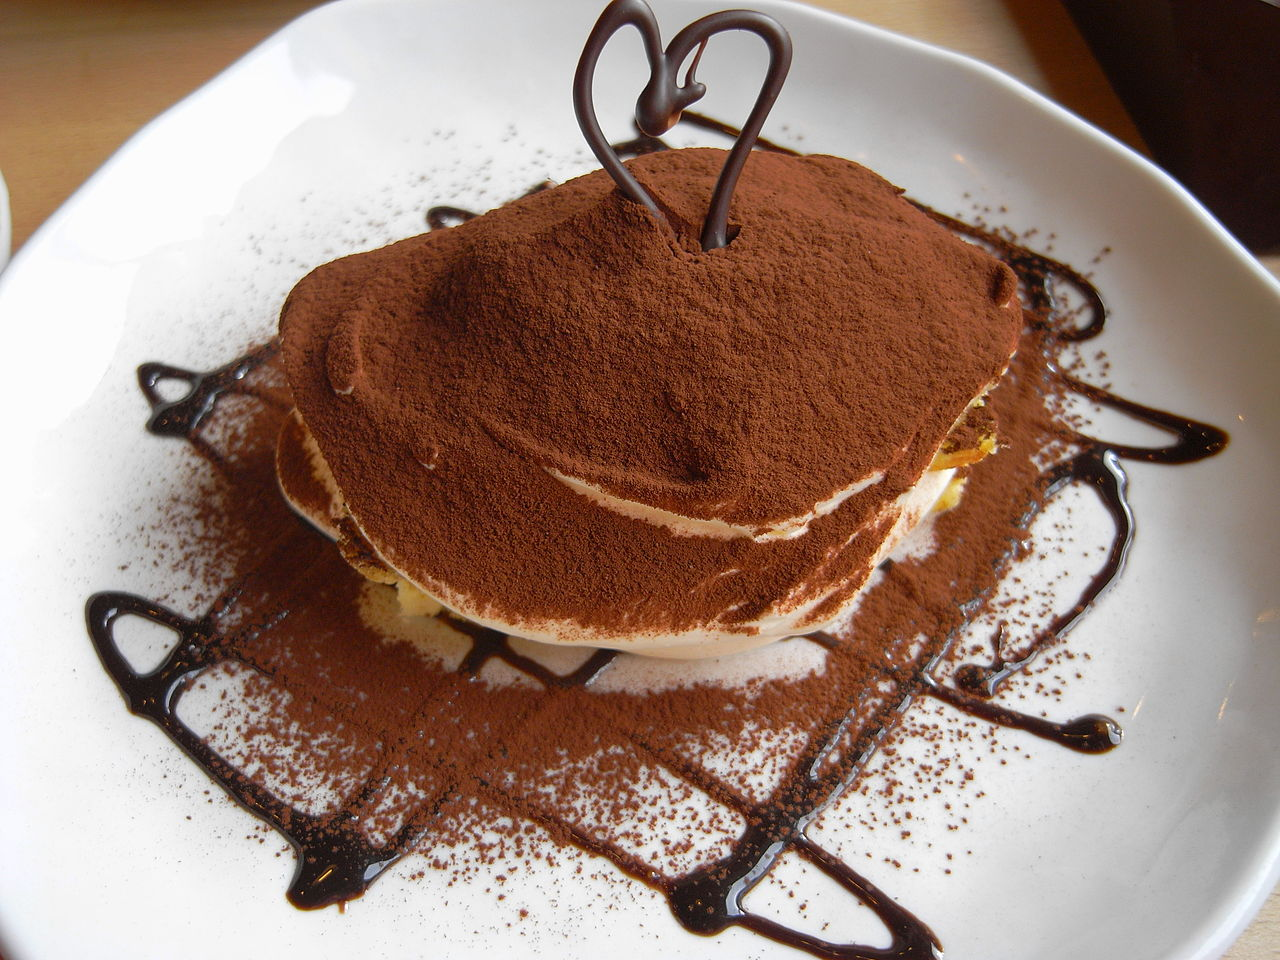 tiramisu with cocoa powder